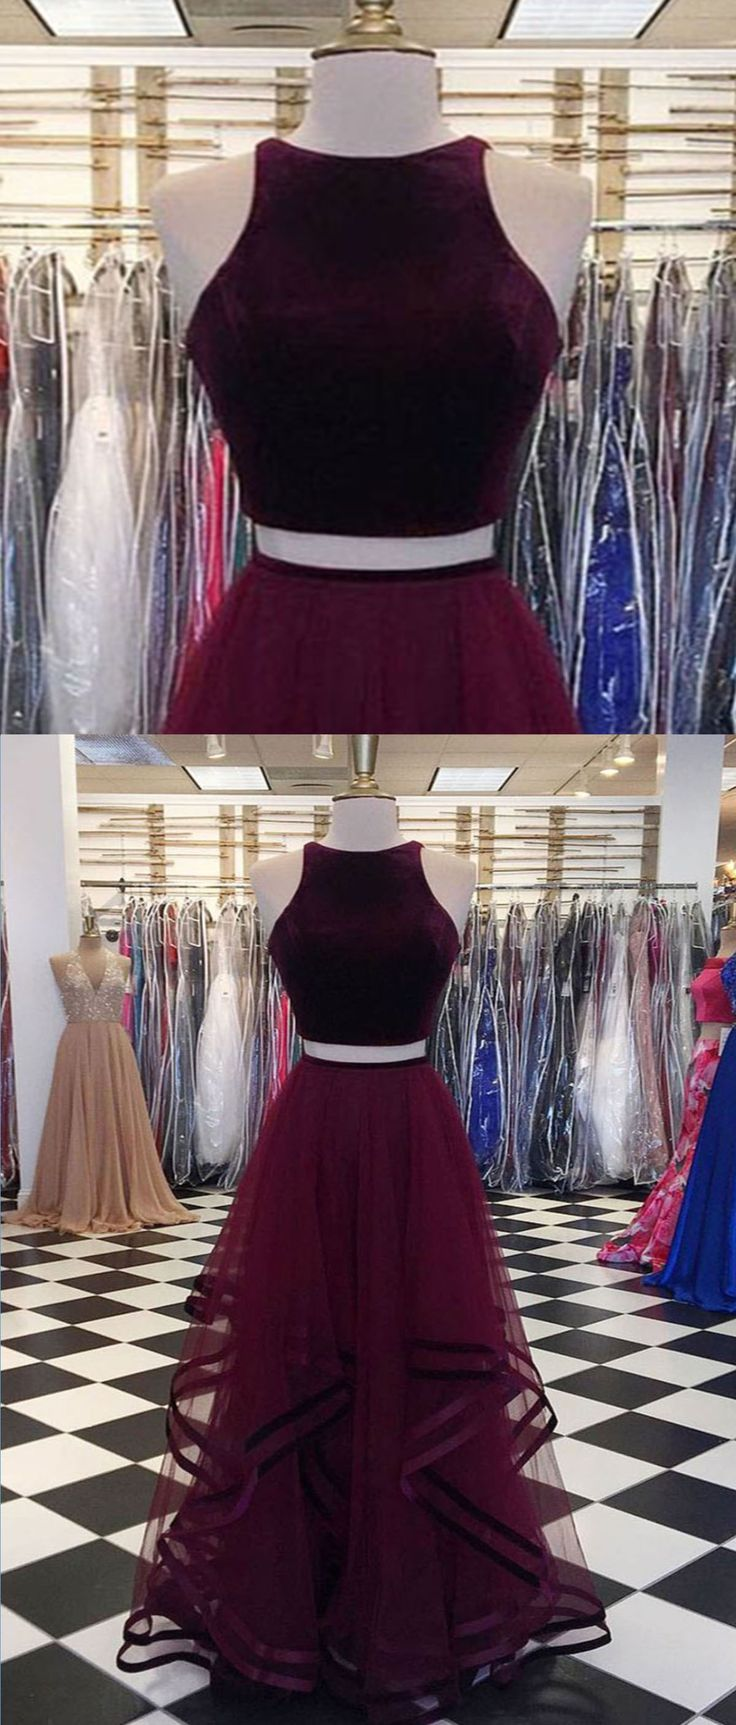 Two Pieces A-Line O-Neck Prom Dresses,Long Prom Dresses,Cheap Prom Dresses, Evening Dress Prom Gowns, Formal Women Dress,Prom Dress